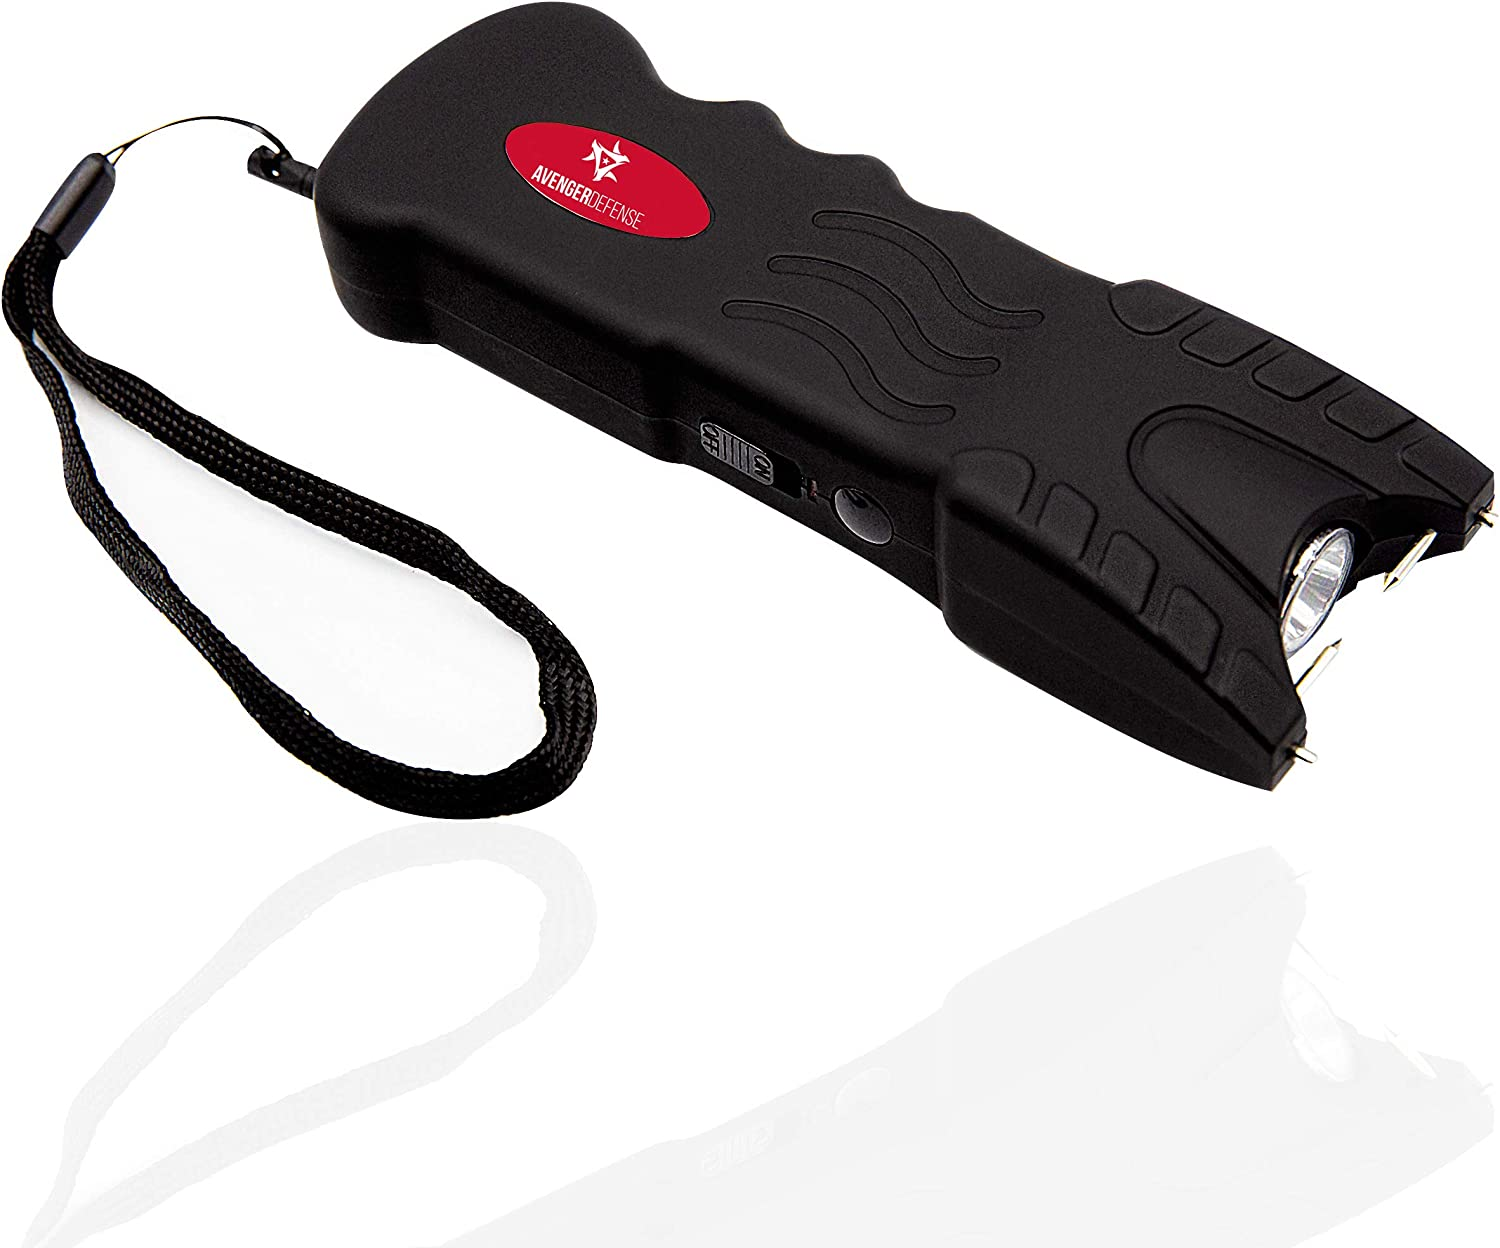 Avenger Defense ADS-80B – Stun Gun Disab with Limited price sale Women for Safety Ranking TOP9